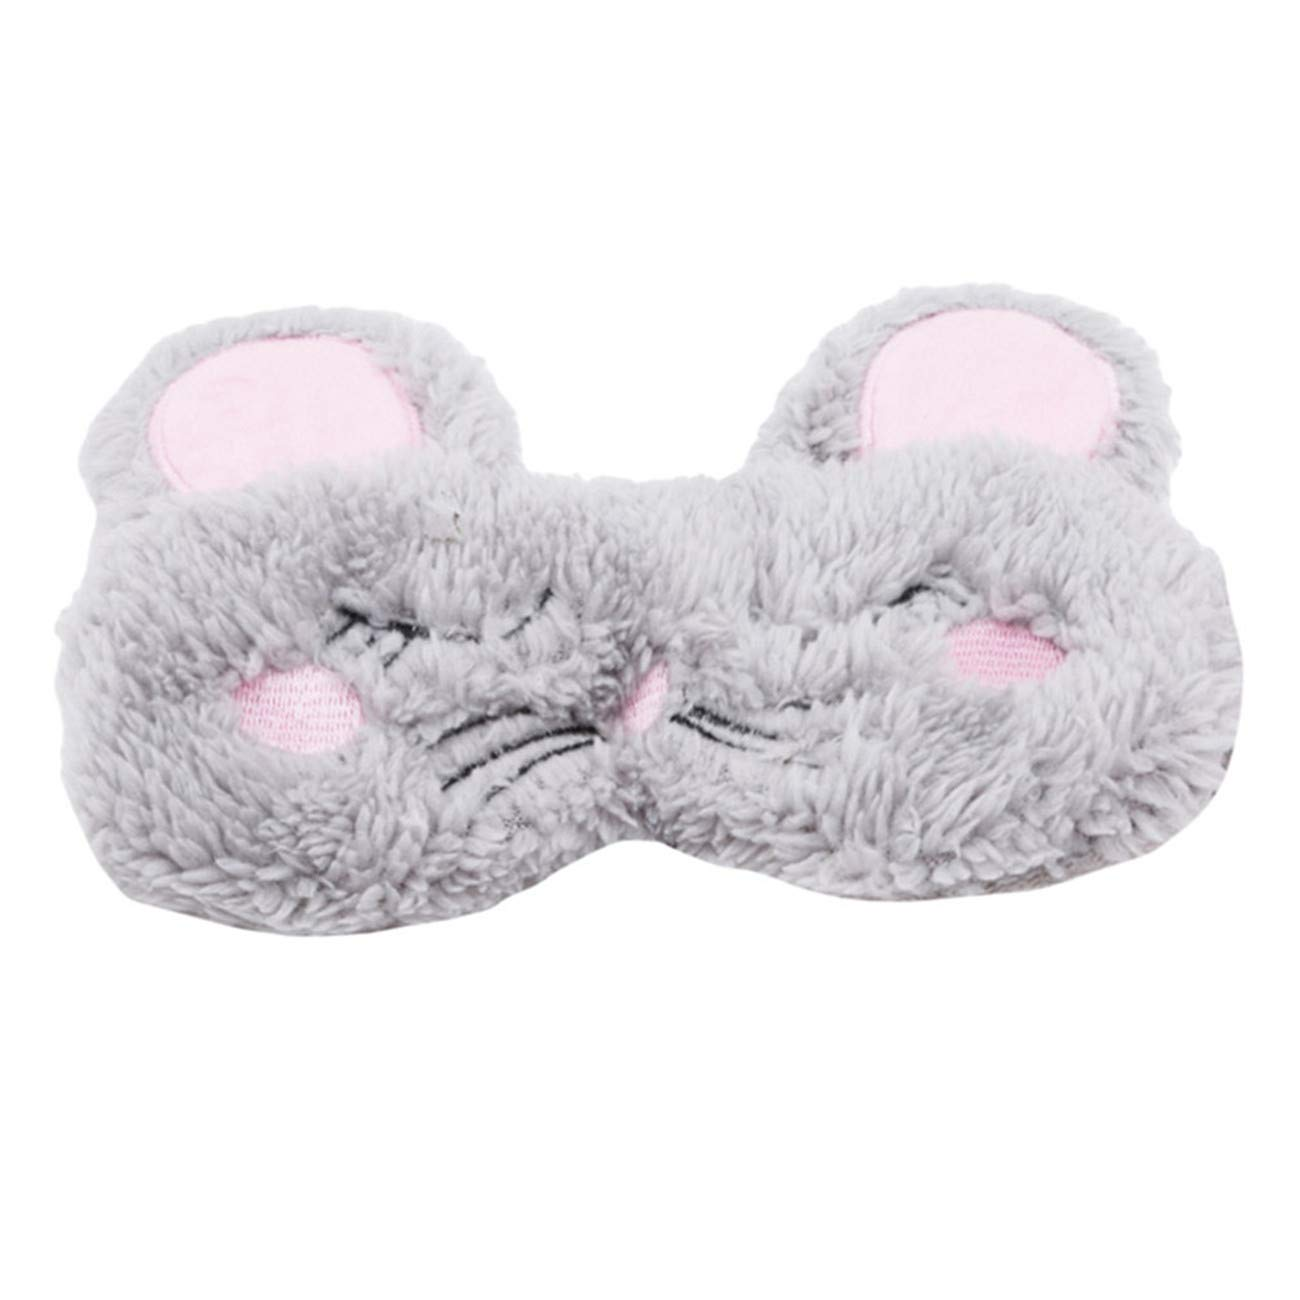 Bigsweety Sleeping Mask Eye Cover Soft Plush Blindfold for Bed Flight Car Camping Use TangRen